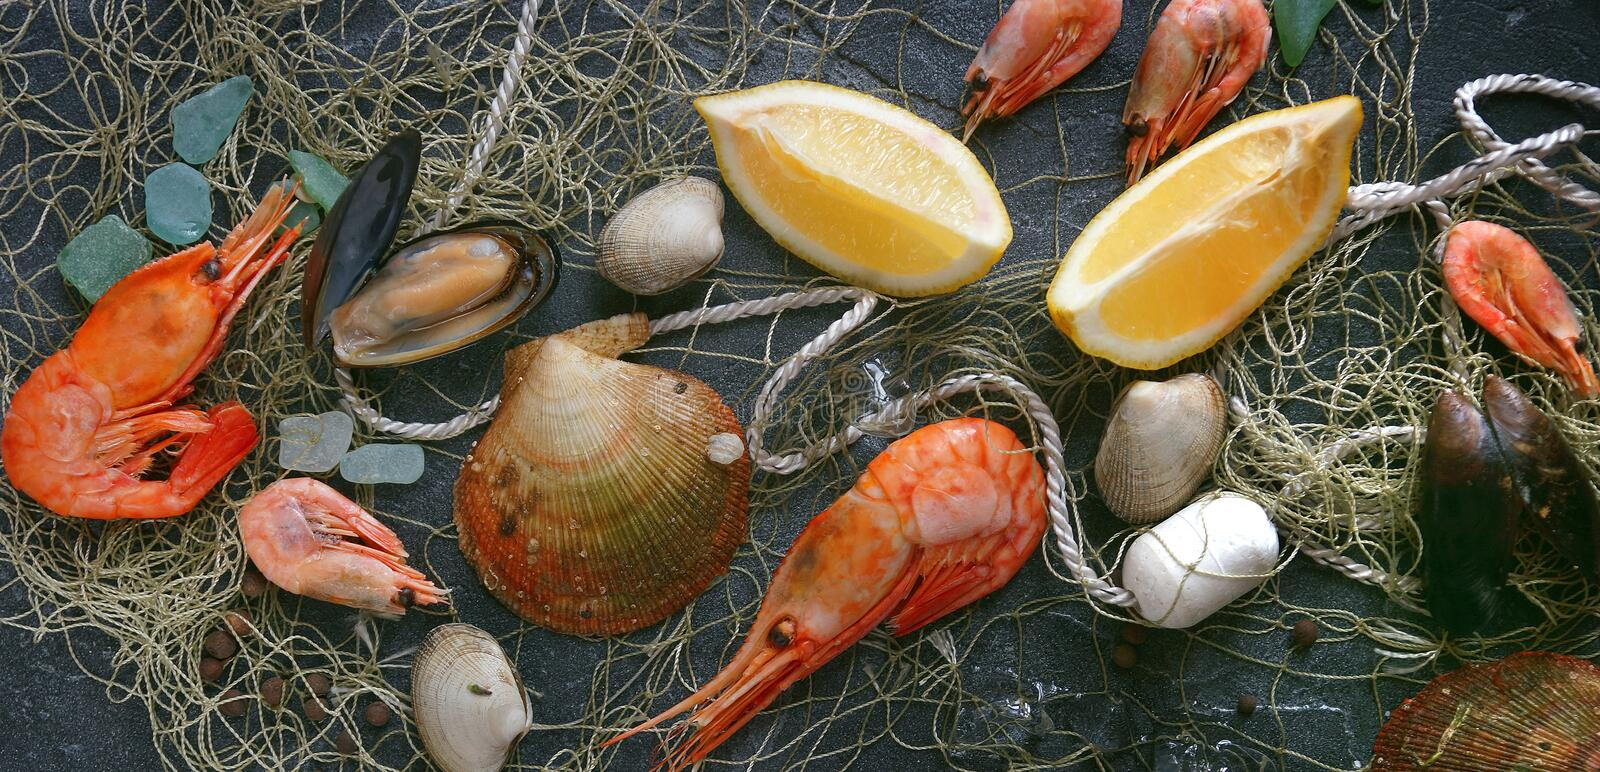 Seafood on a dark background, Shrimps, mussels, mussels on black stone, Banner stock image